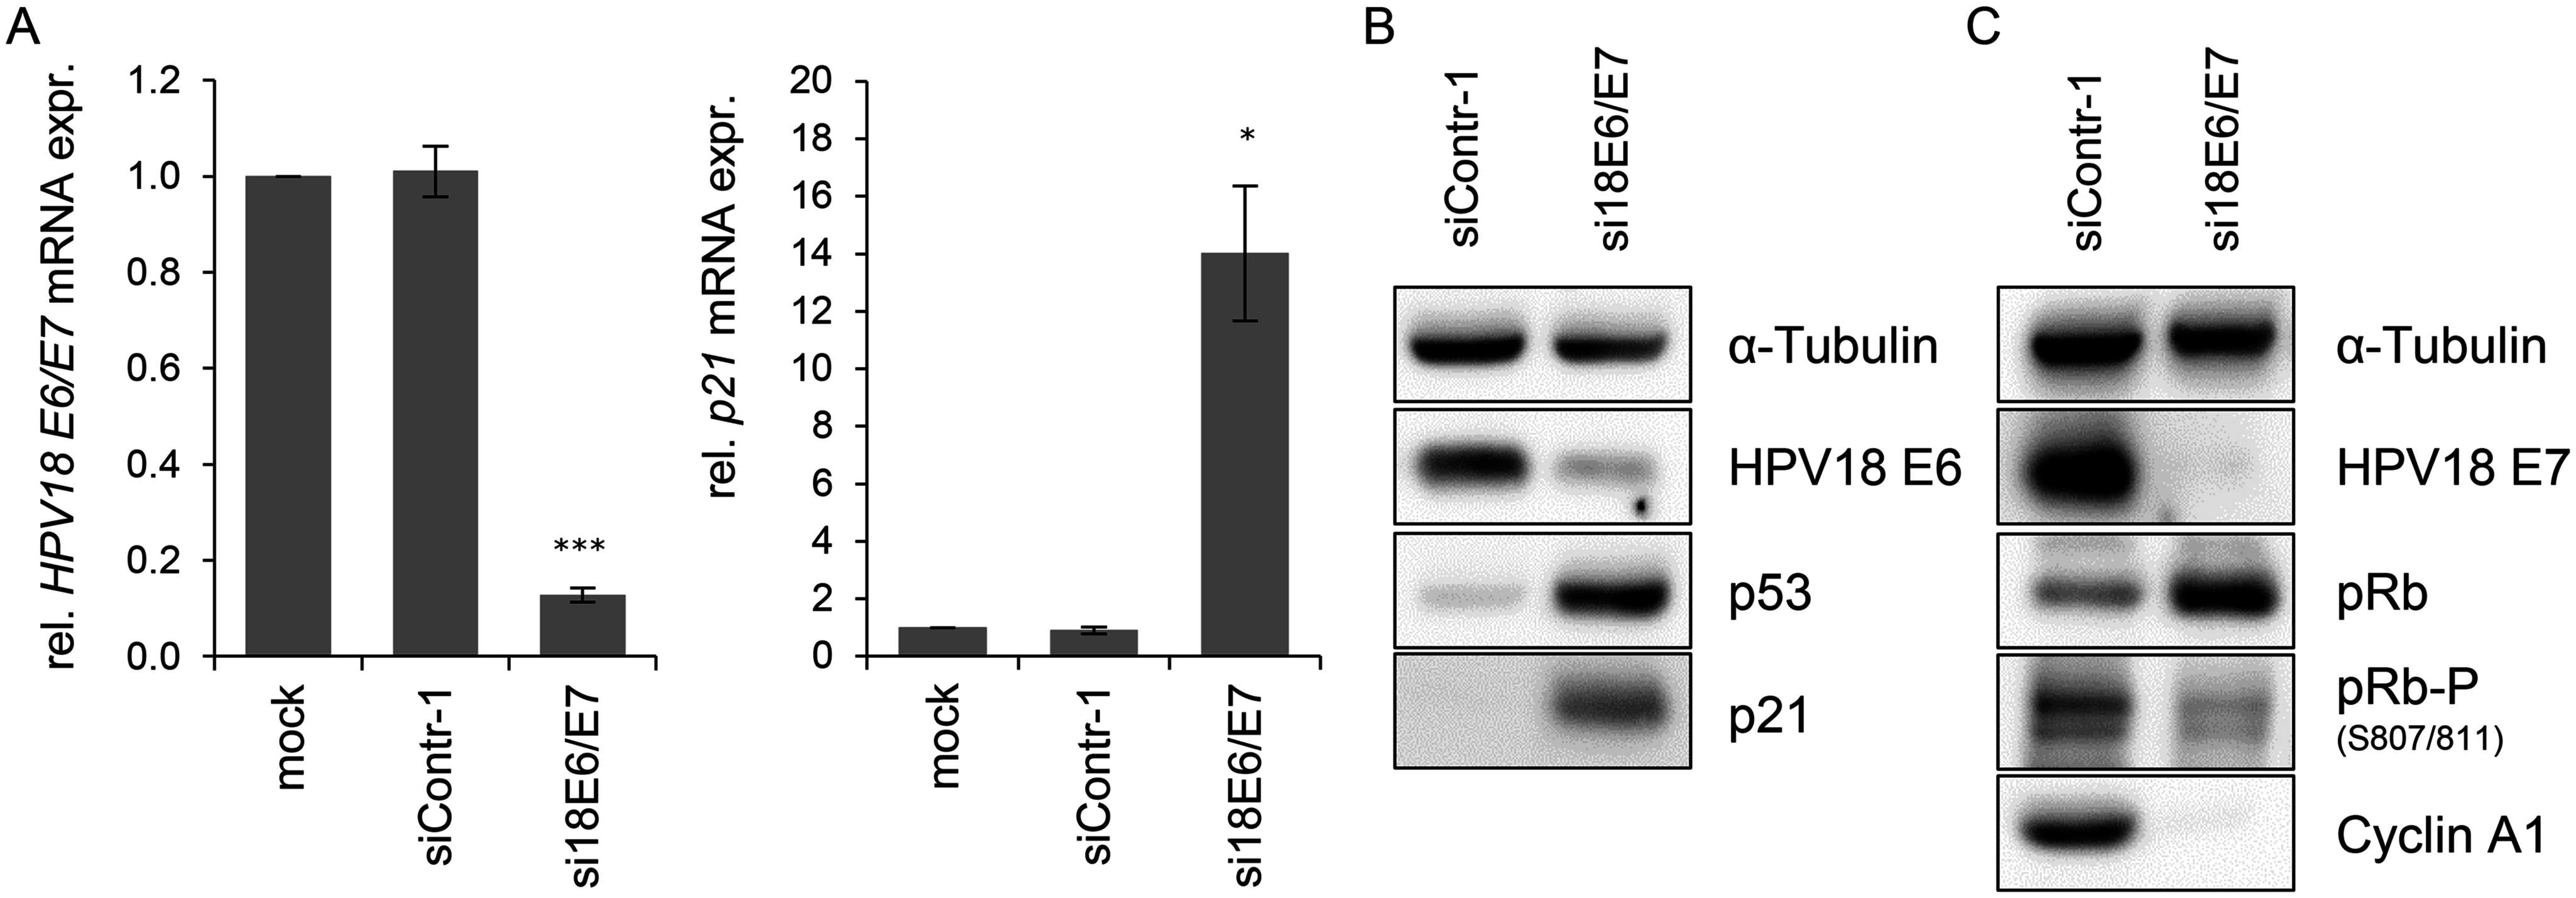 Silencing of HPV18 <i>E6/E7</i> expression by RNA interference.